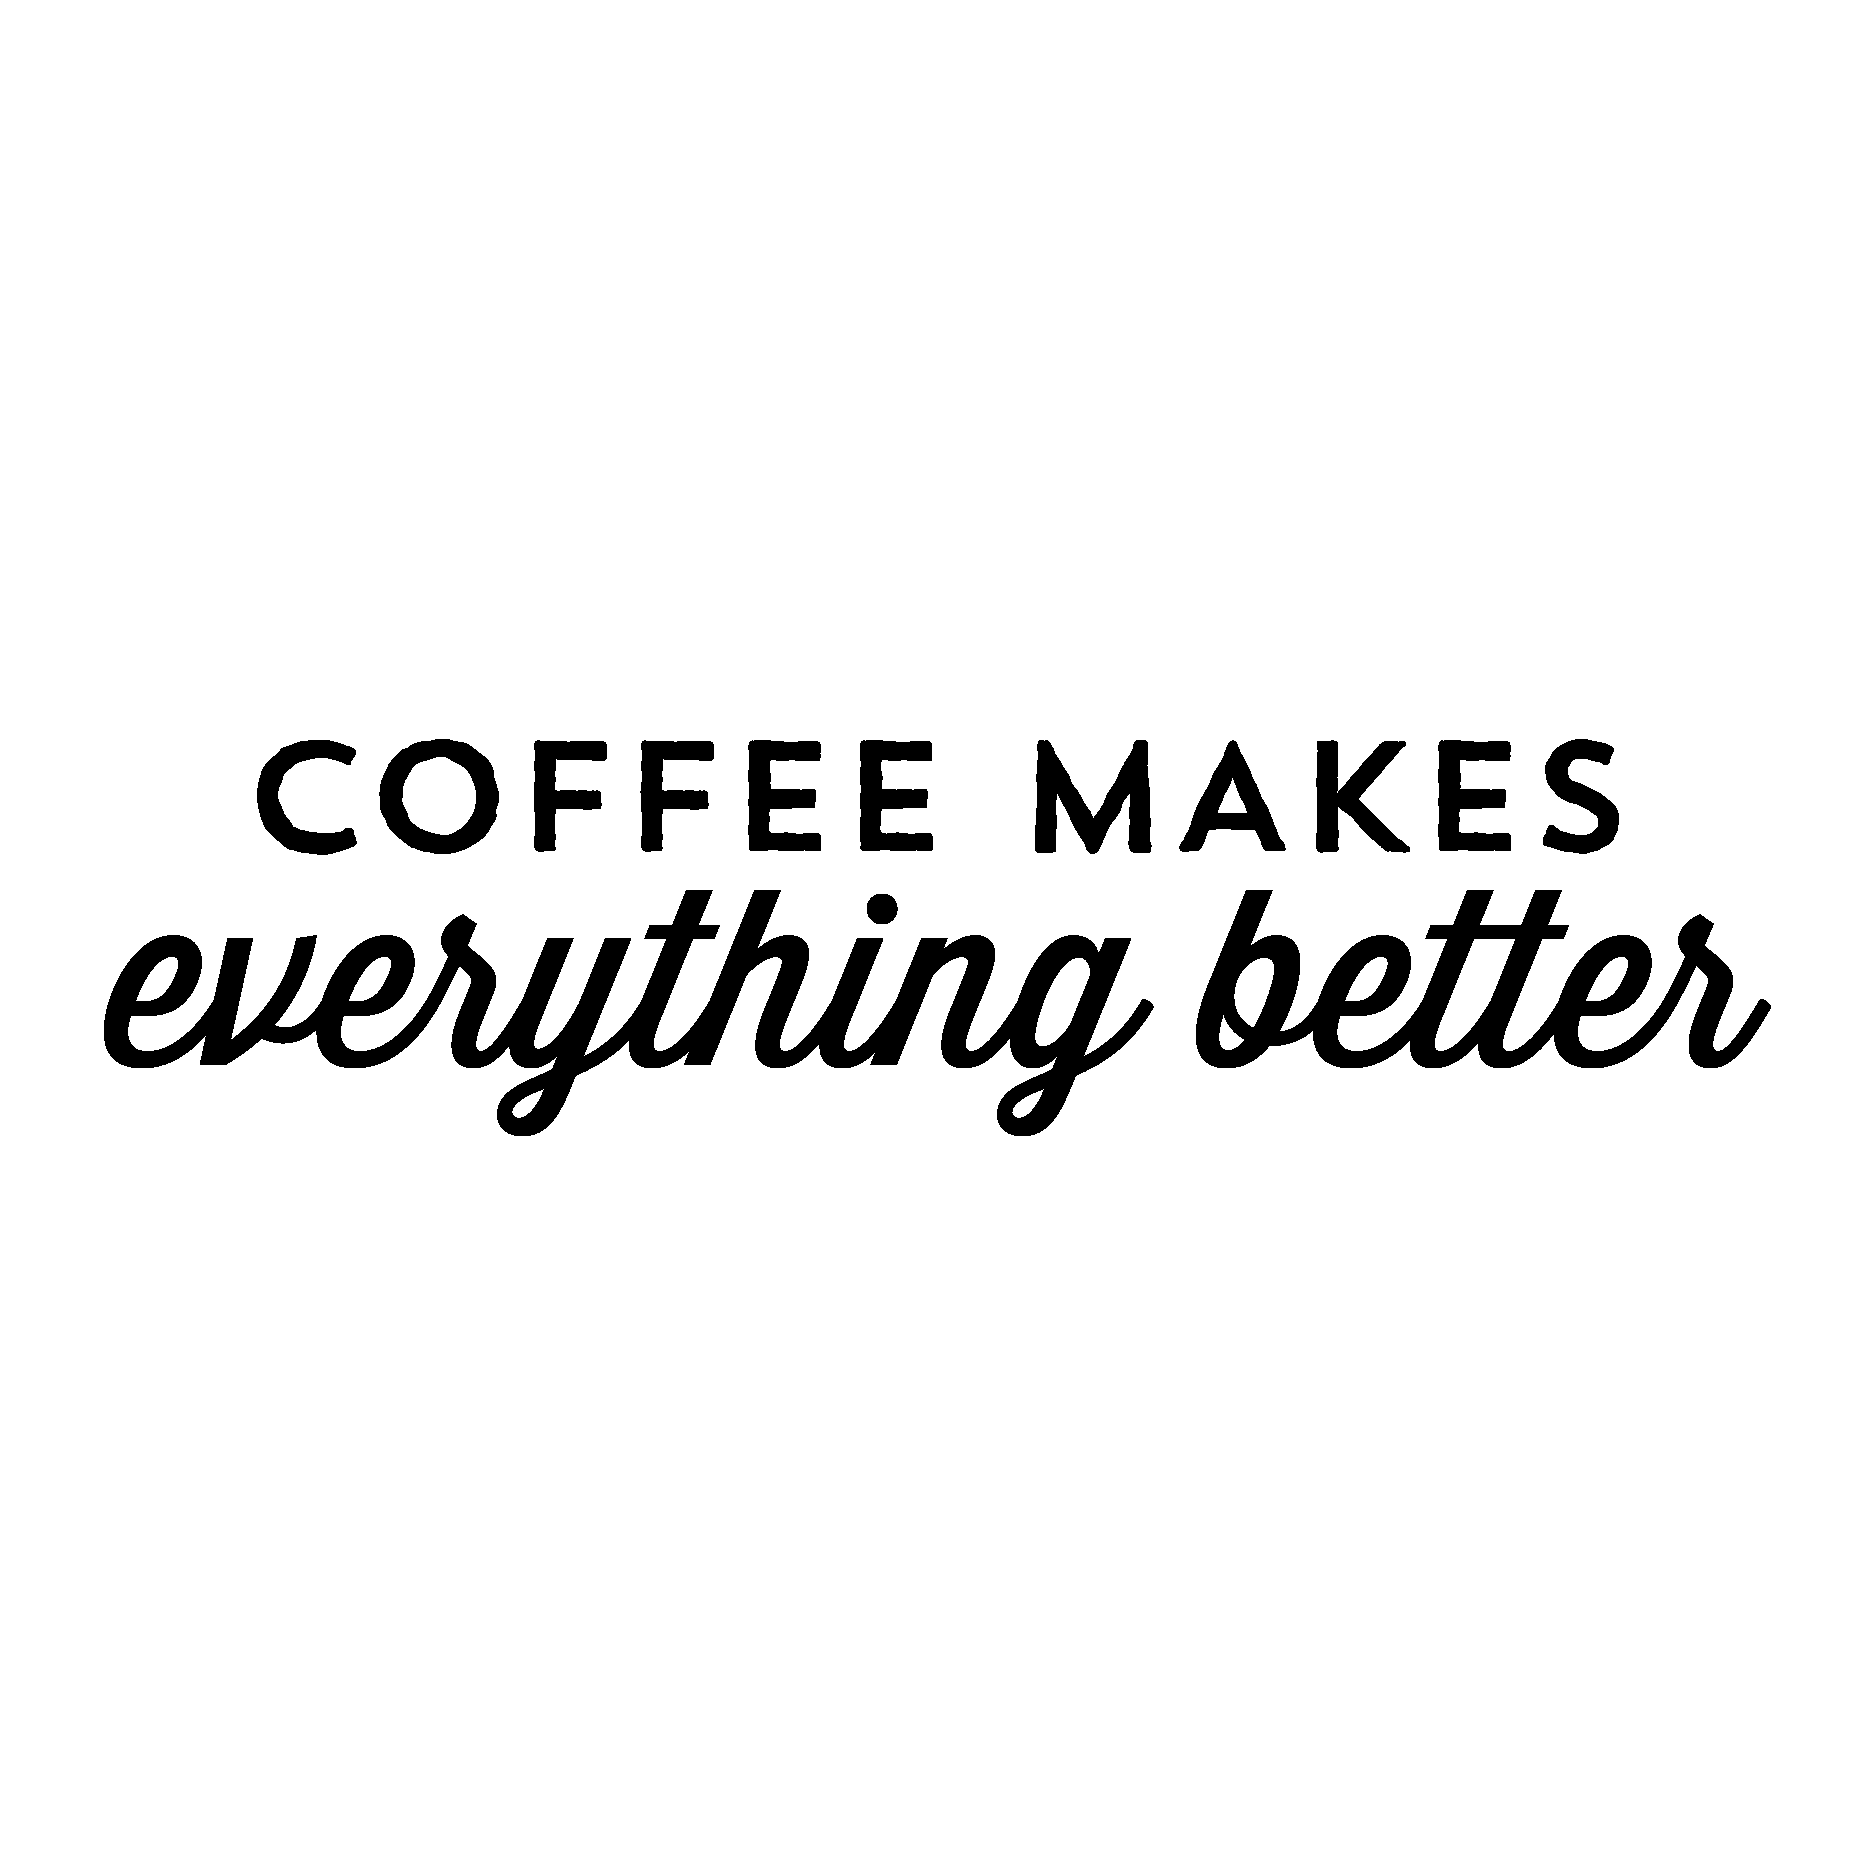 Coffee Makes Everything Better Wall Quotes™ Decal